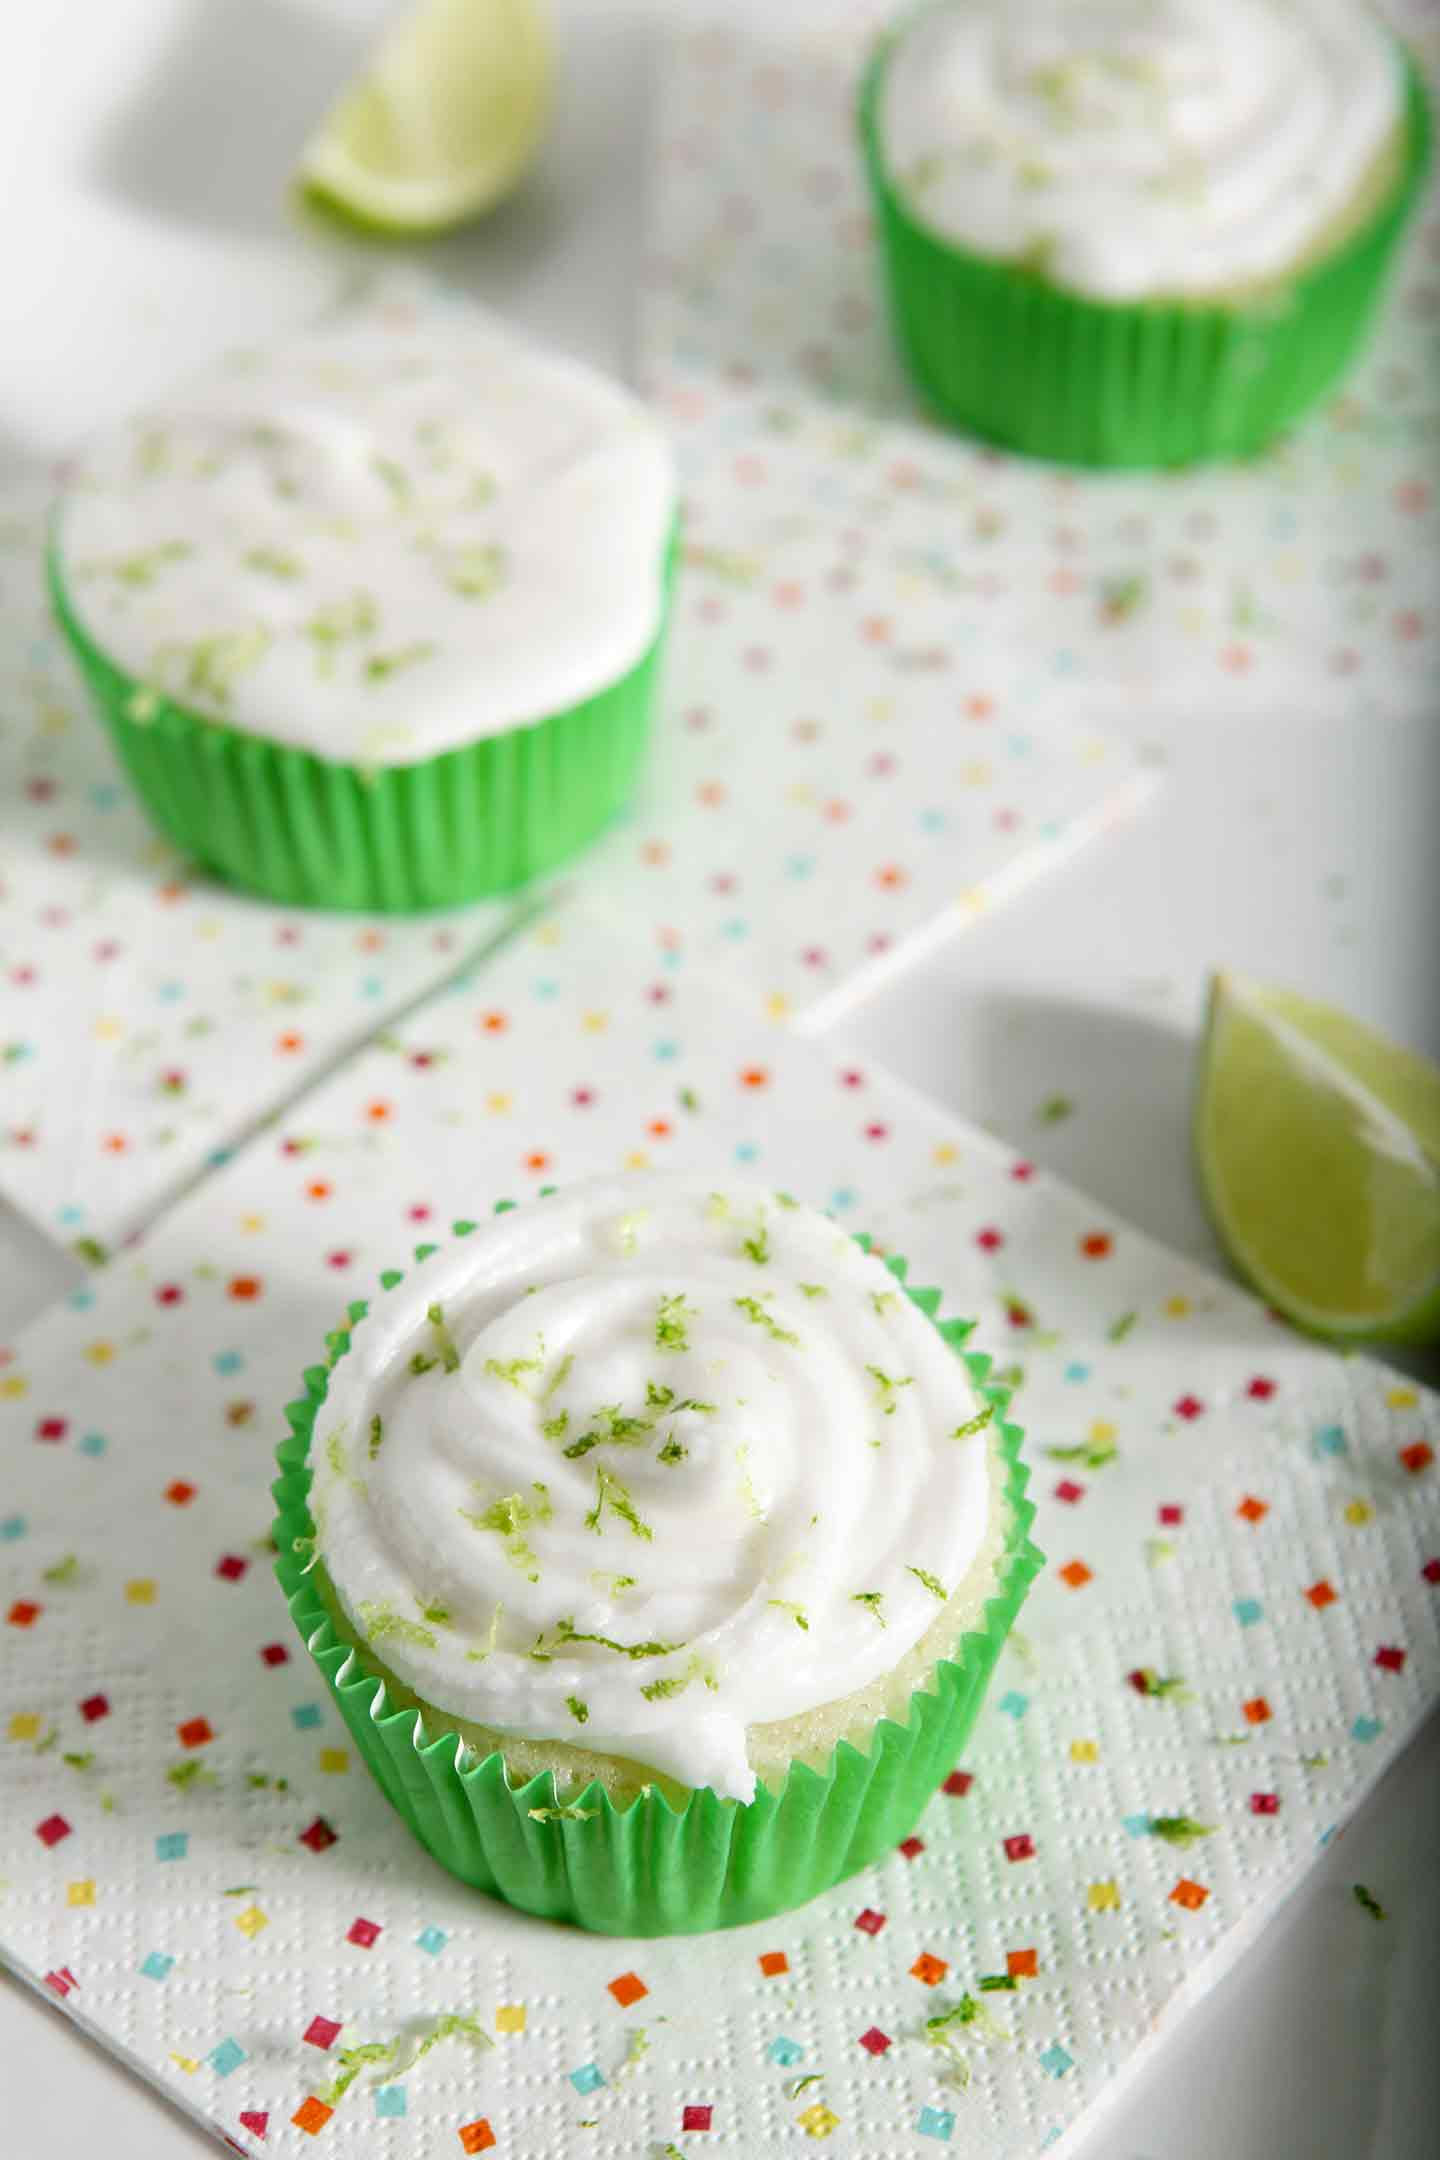 Three Margarita Cupcakes with Salted Tequila Frosting are displayed on a white tray